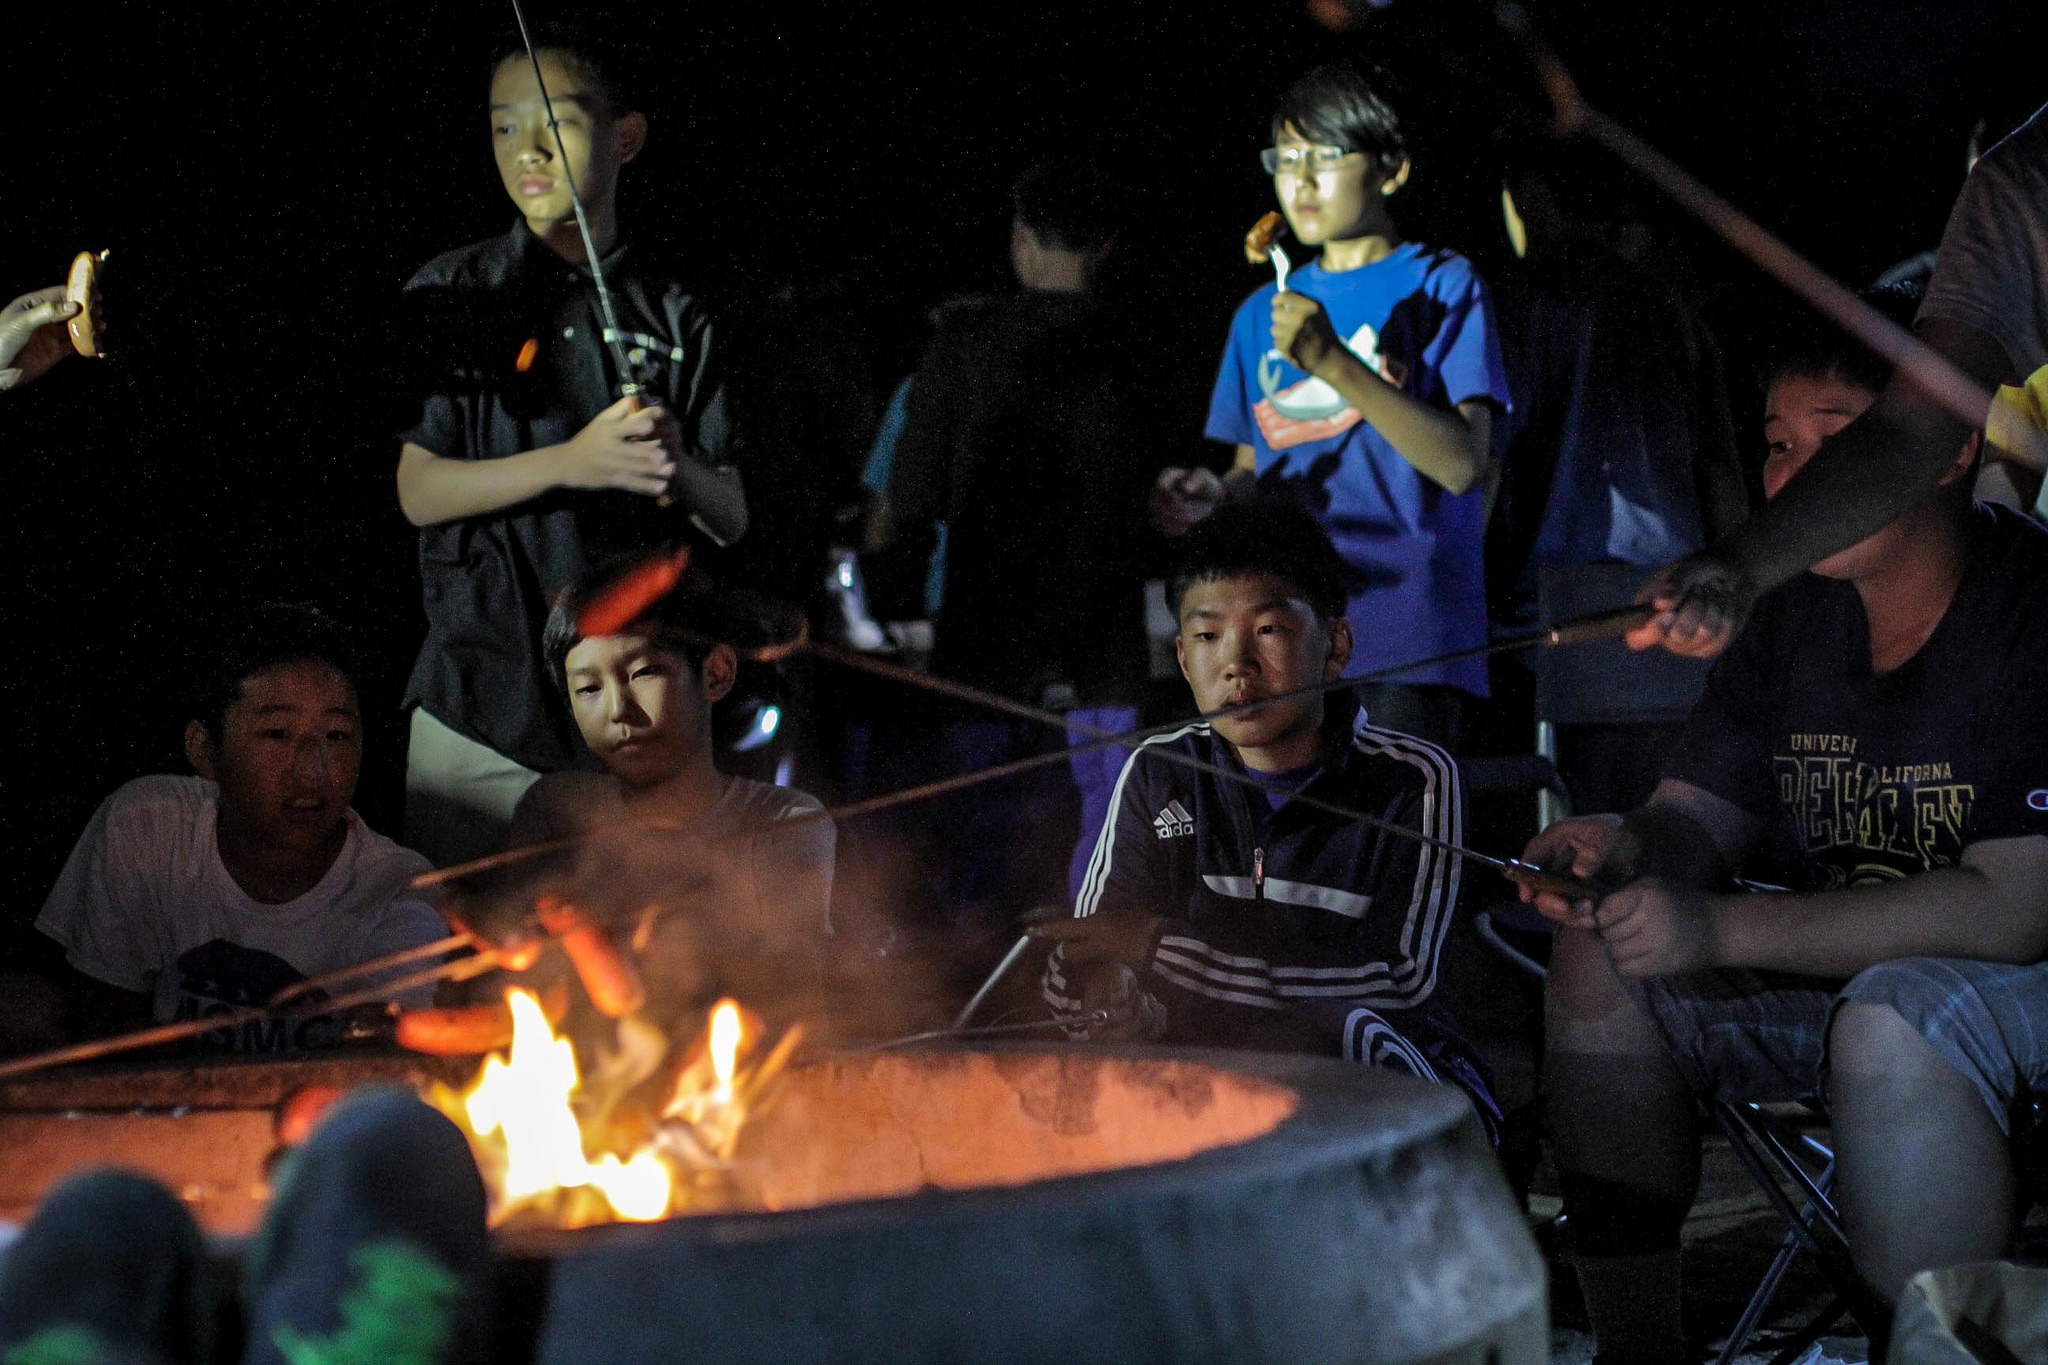 The boys also heard scary stories, but we spent most of our time munching on delicious food roasted over an open fire. Late at night, we played board games inside our tents with just a small lantern as our source of light. It felt like we were connecting with nature...sort of.